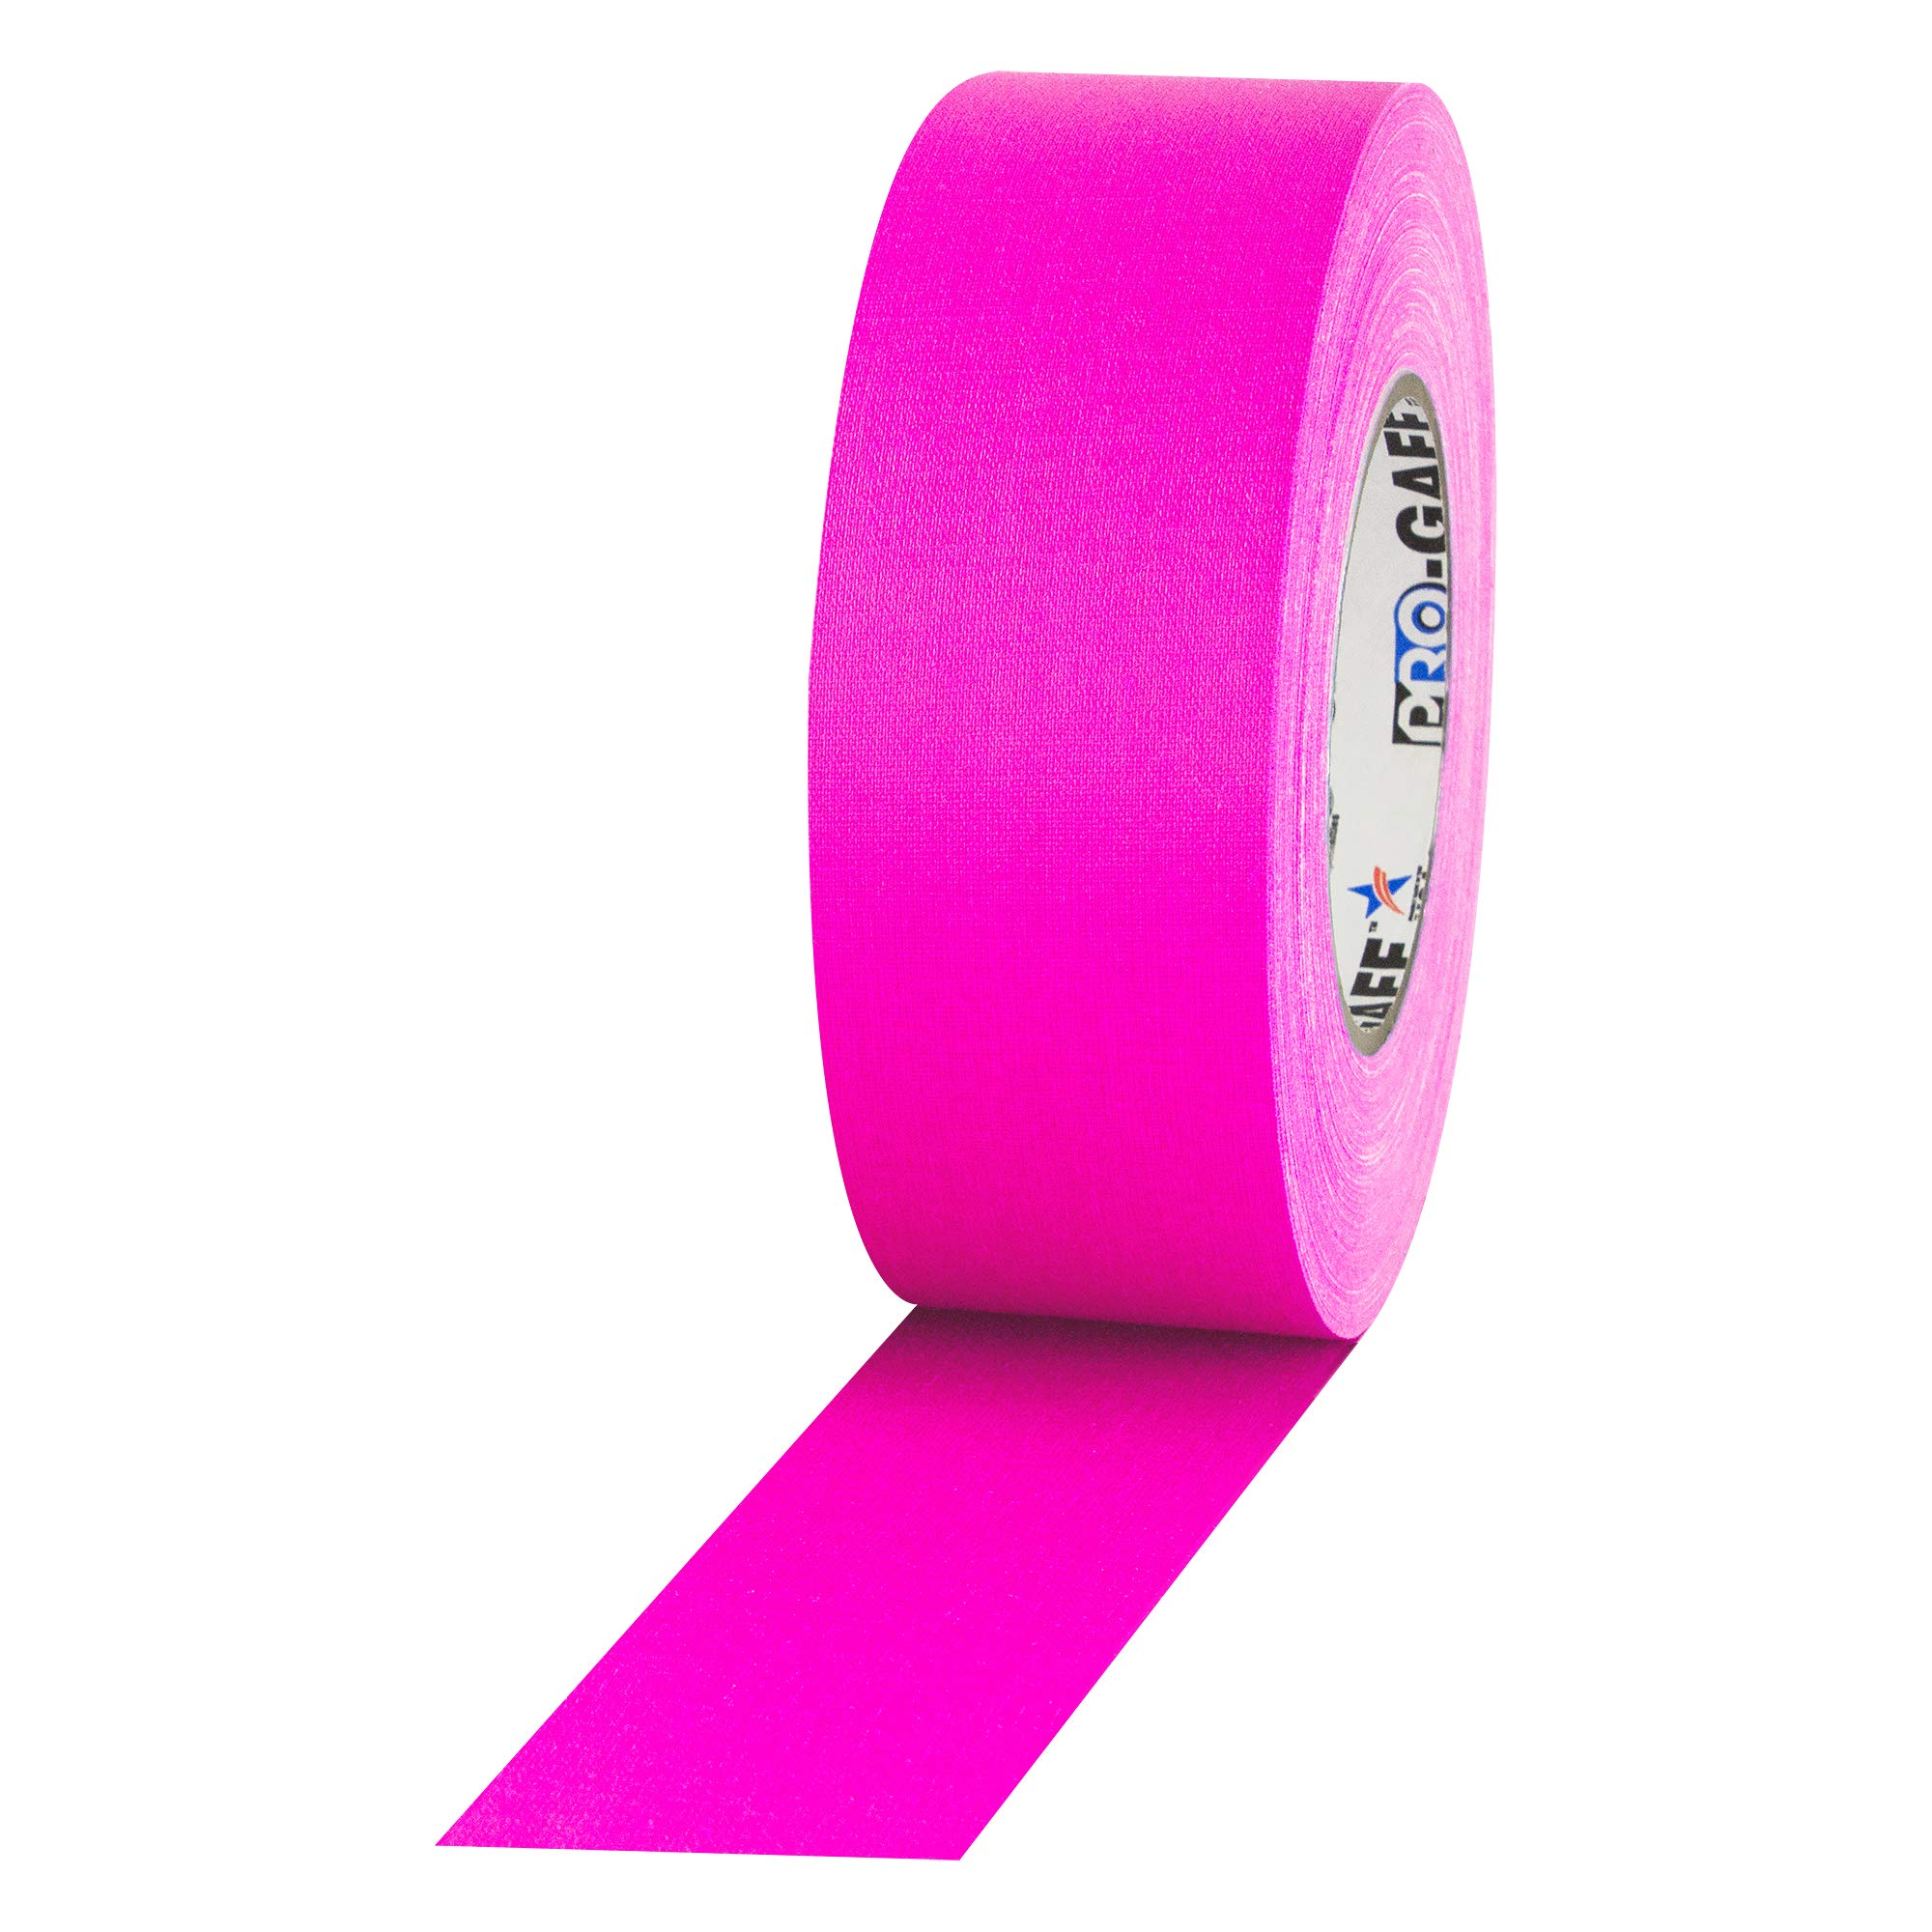 """2"""" Width ProTapes Pro Gaff Premium Matte Cloth Gaffer's Tape With Rubber Adhesive, 50 yds Length x, Fluorescent Pink (Pack of 1)"""